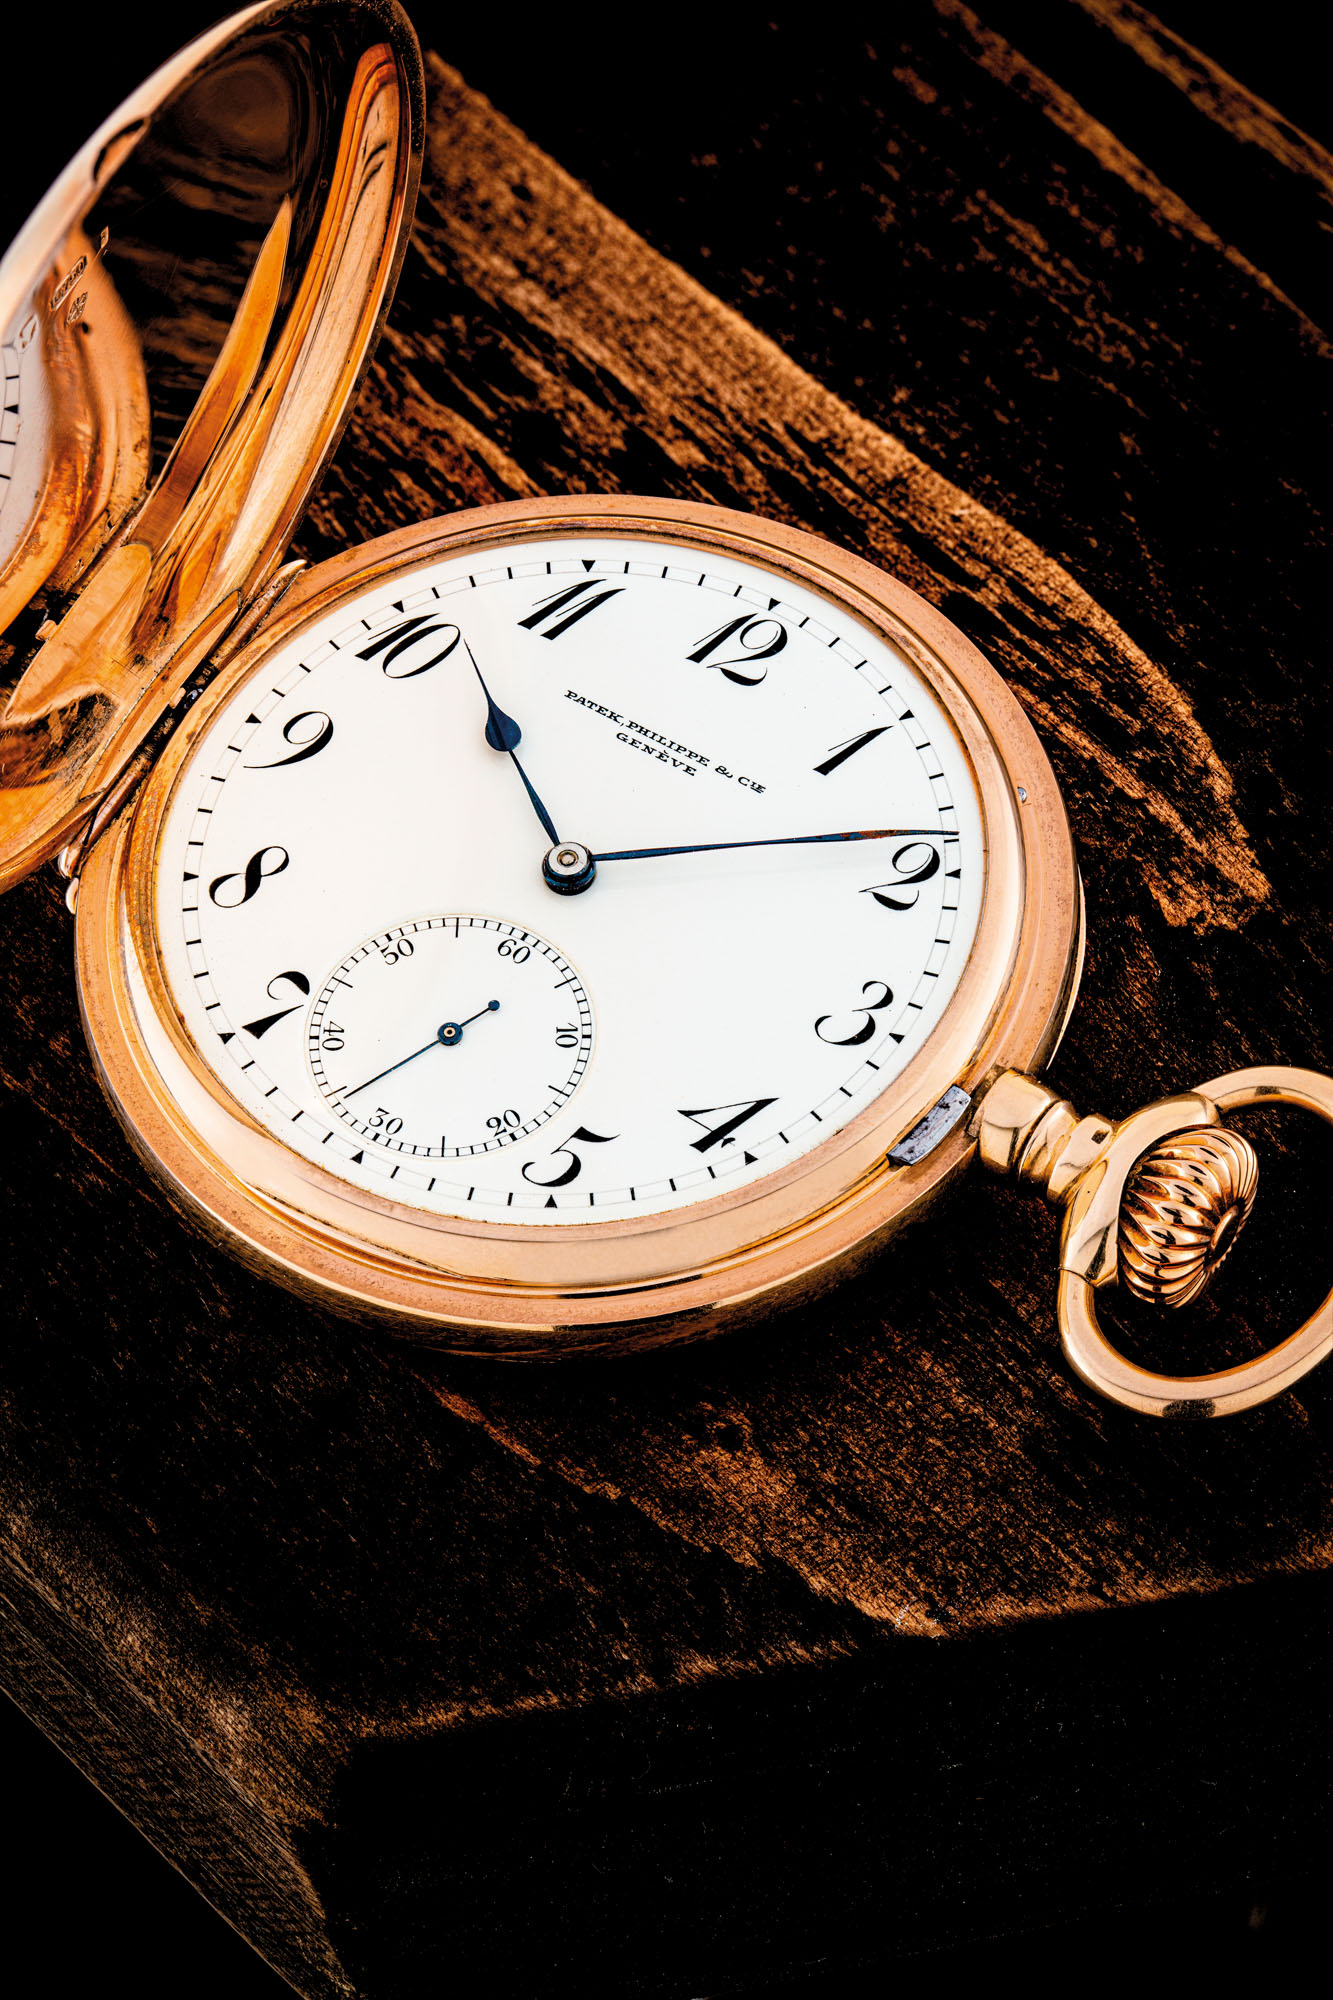 PATEK PHILIPPE. AN 18K PINK GOLD KEYLESS LEVER WATCH WITH ENAMEL DIAL AND BREGUET NUMERALS